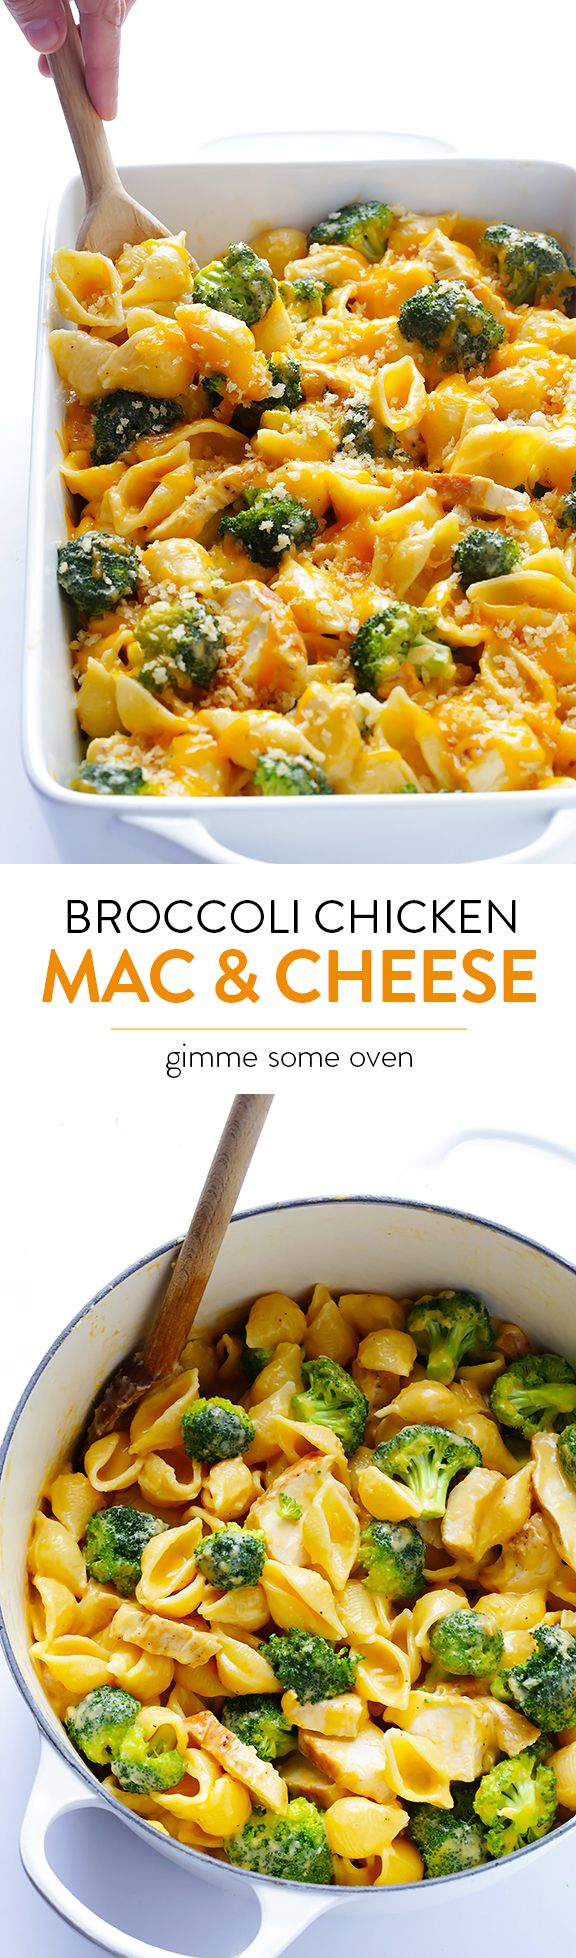 Broccoli Chicken Mac & Cheese - Easy to make, super tasty, and you can serve it stovetop-style or baked.